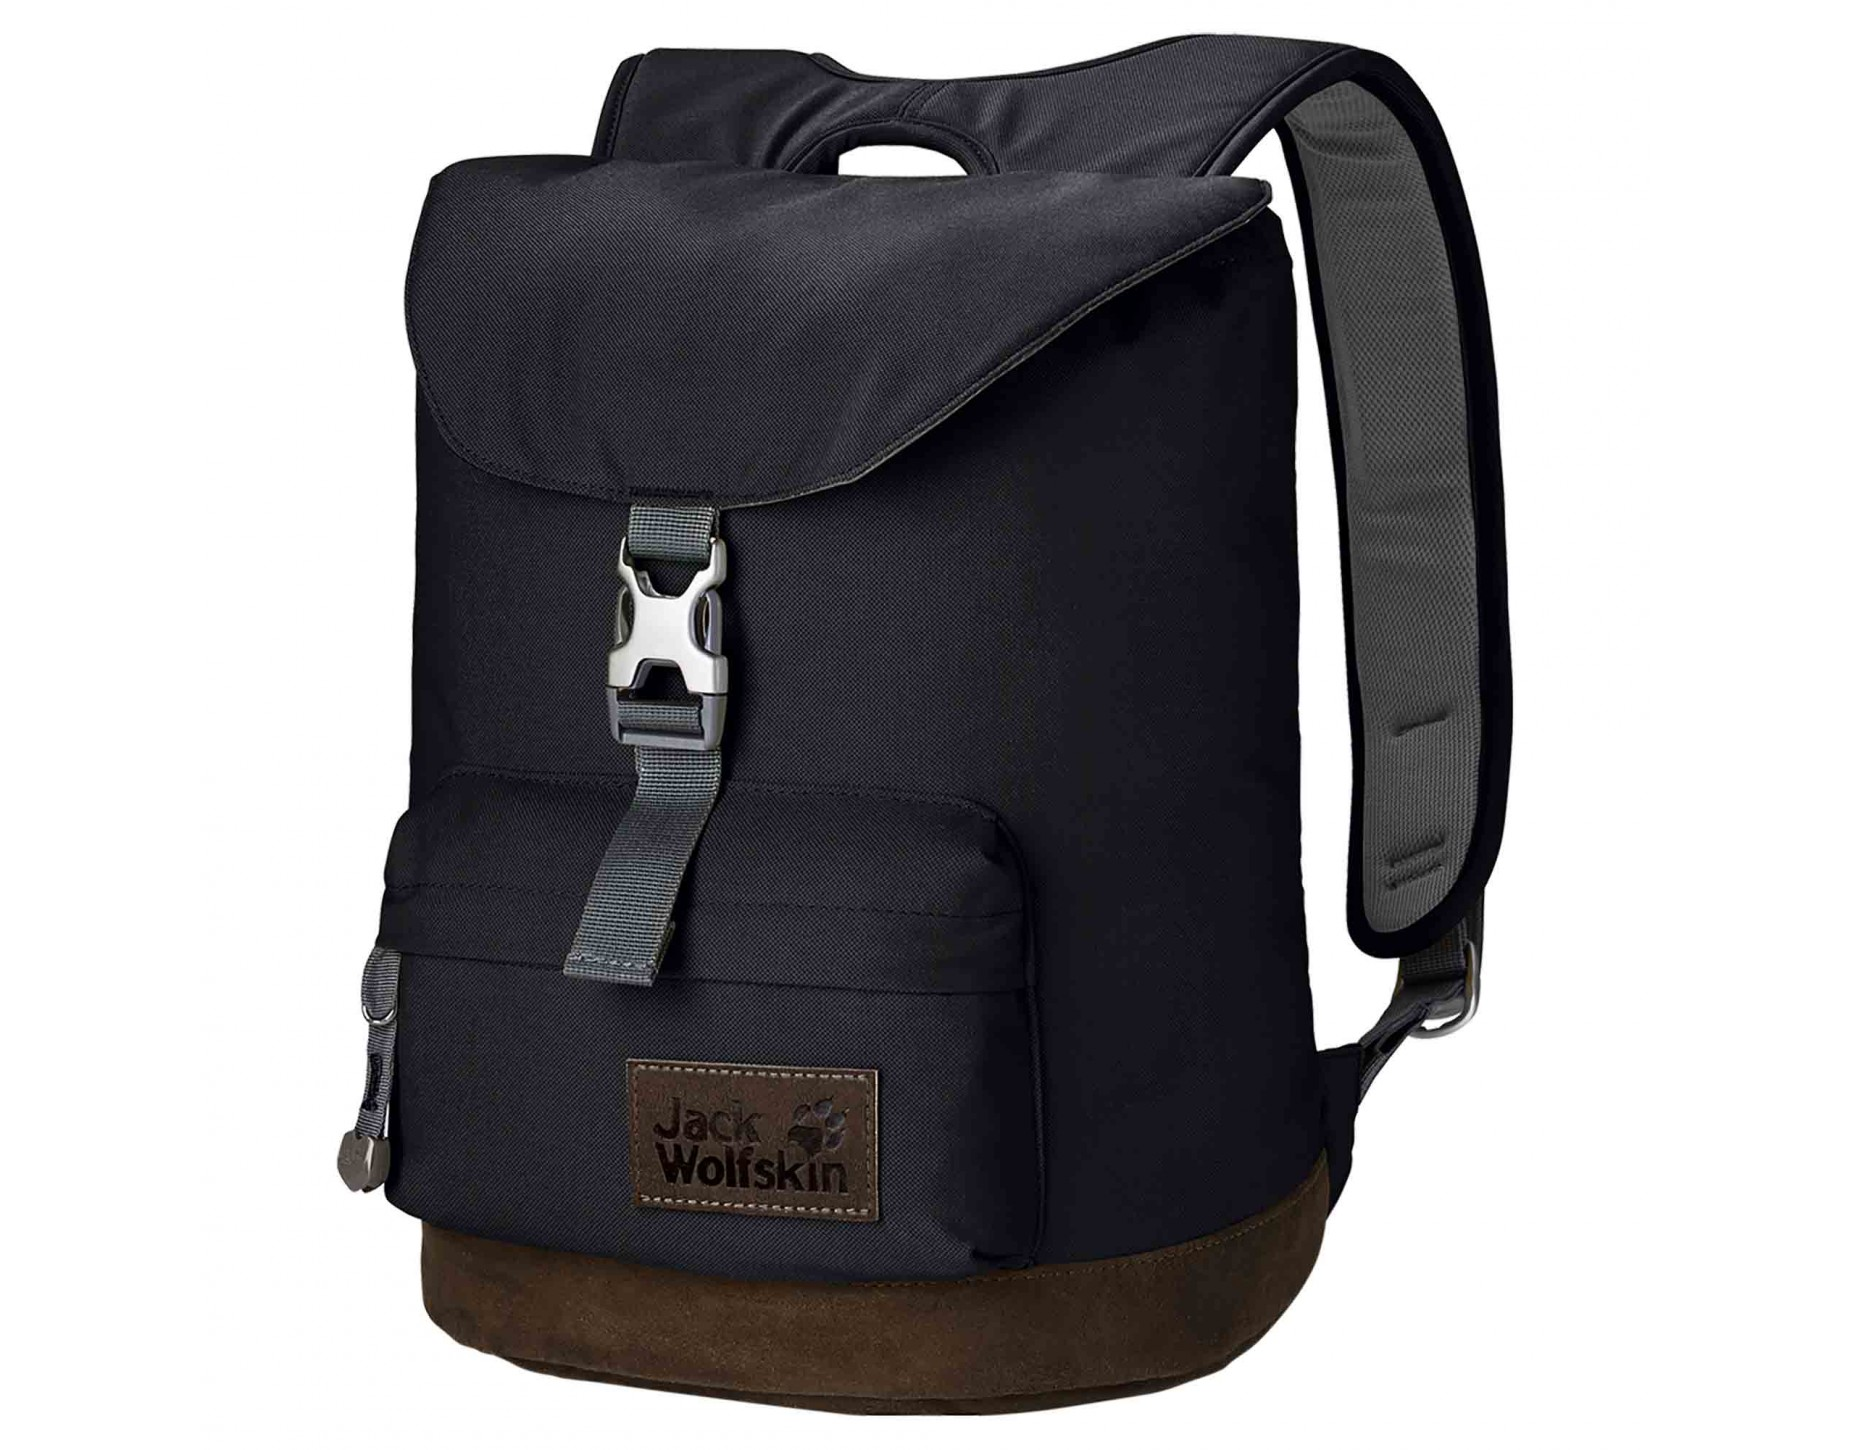 jack wolfskin queensbury rucksack offers at the cycling. Black Bedroom Furniture Sets. Home Design Ideas